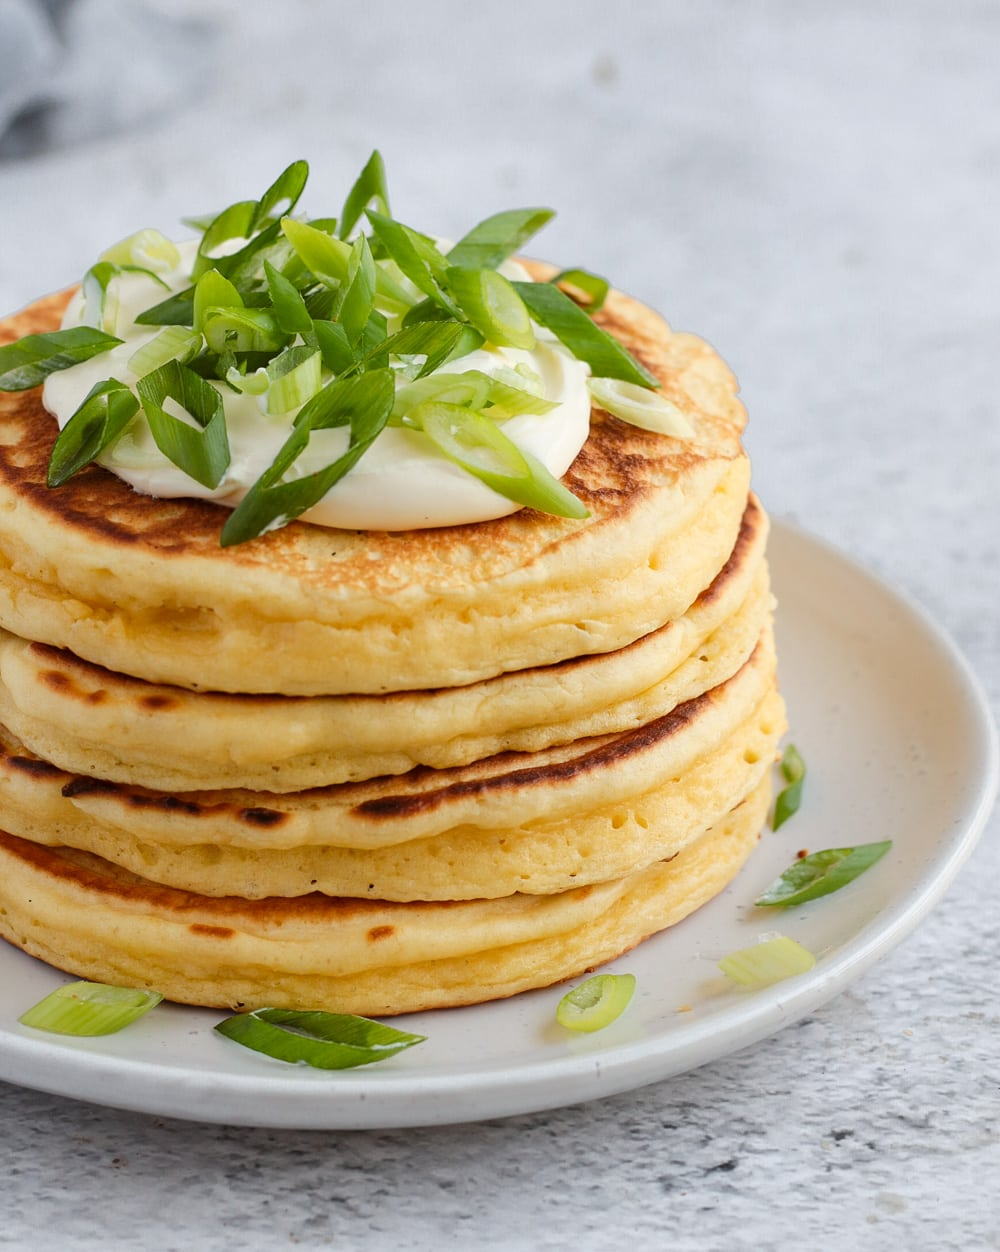 Pancake Stack topped with Sour Cream and Spring Onions